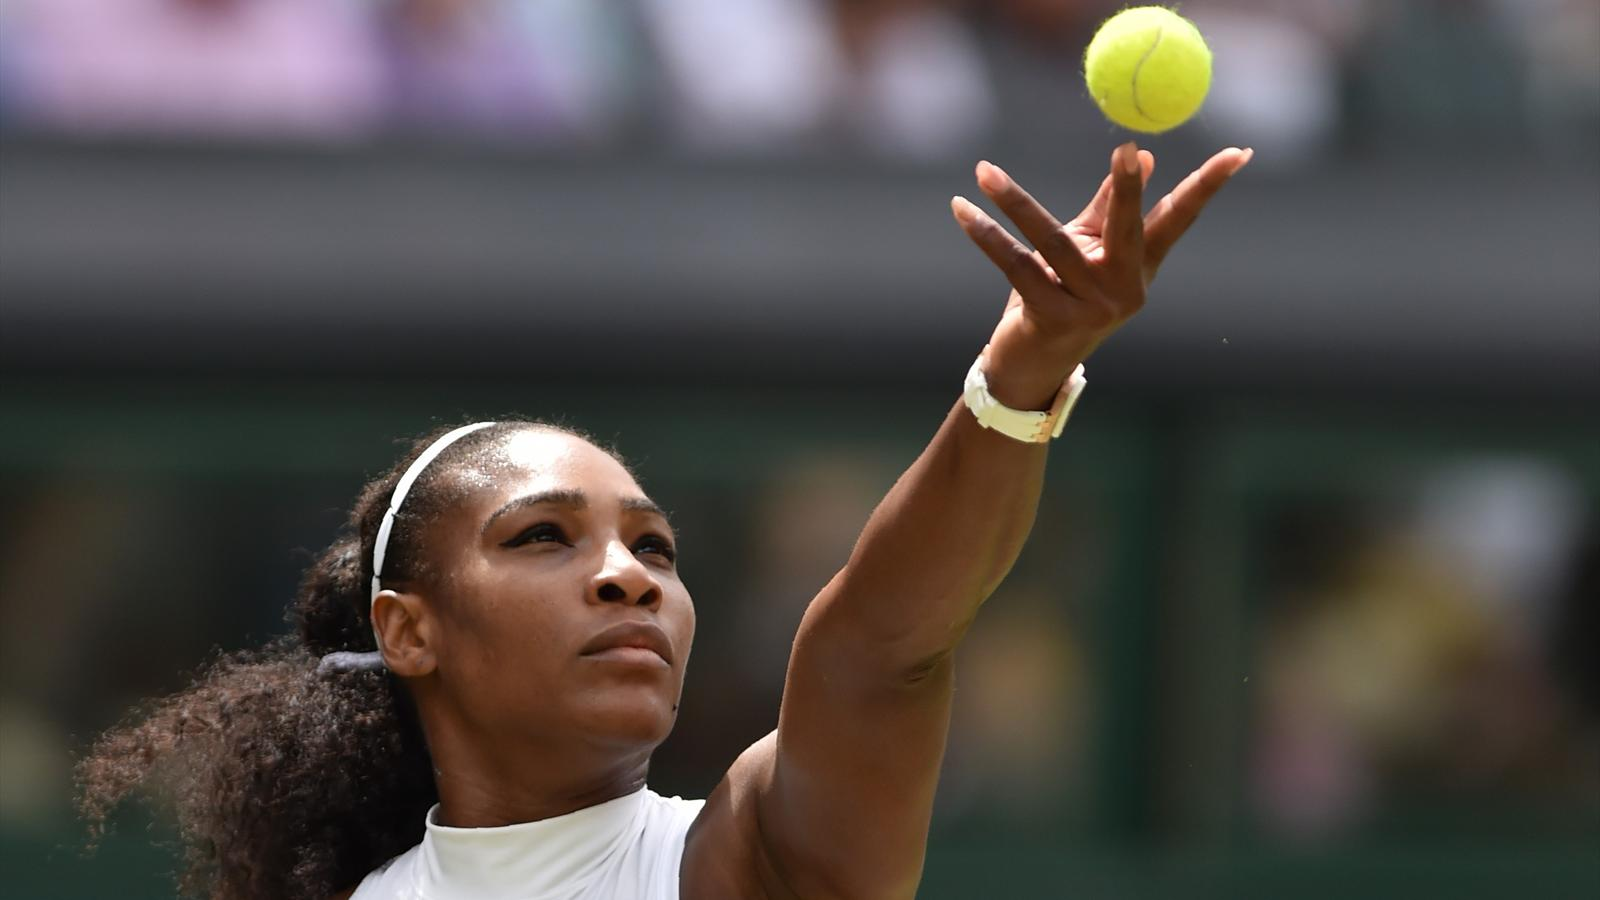 wimbledon hindu personals Wimbledon 2018: the men's singles draw in full - the pathway to the final on july 15 at sw19 men's favourite roger federer has a gentle looking opener against serb dusan lajovic at wimbledon.